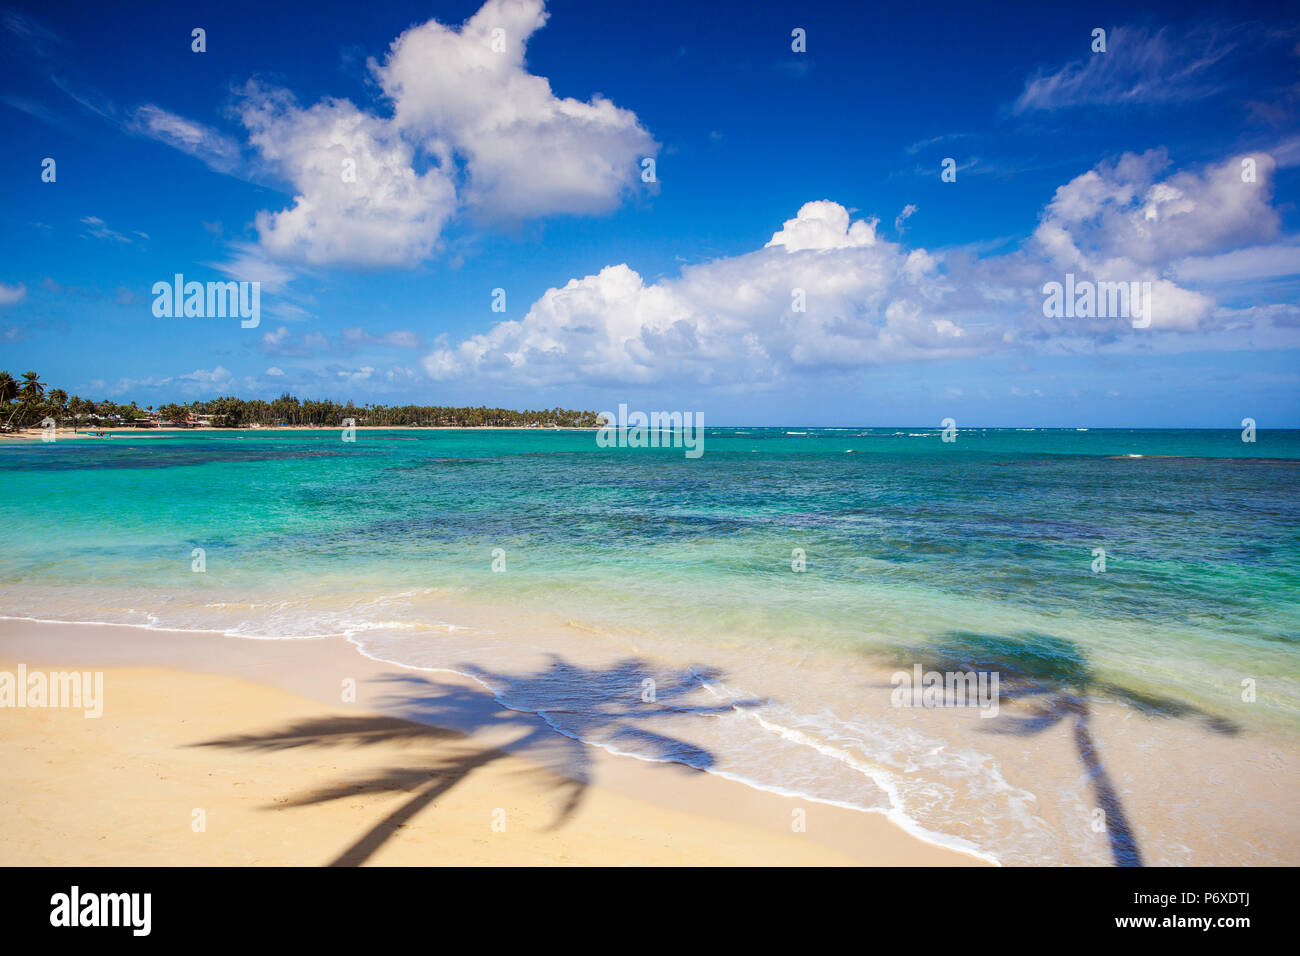 Dominican Republic, Samana Peninsula, Beach at Las Terrenas - Stock Image